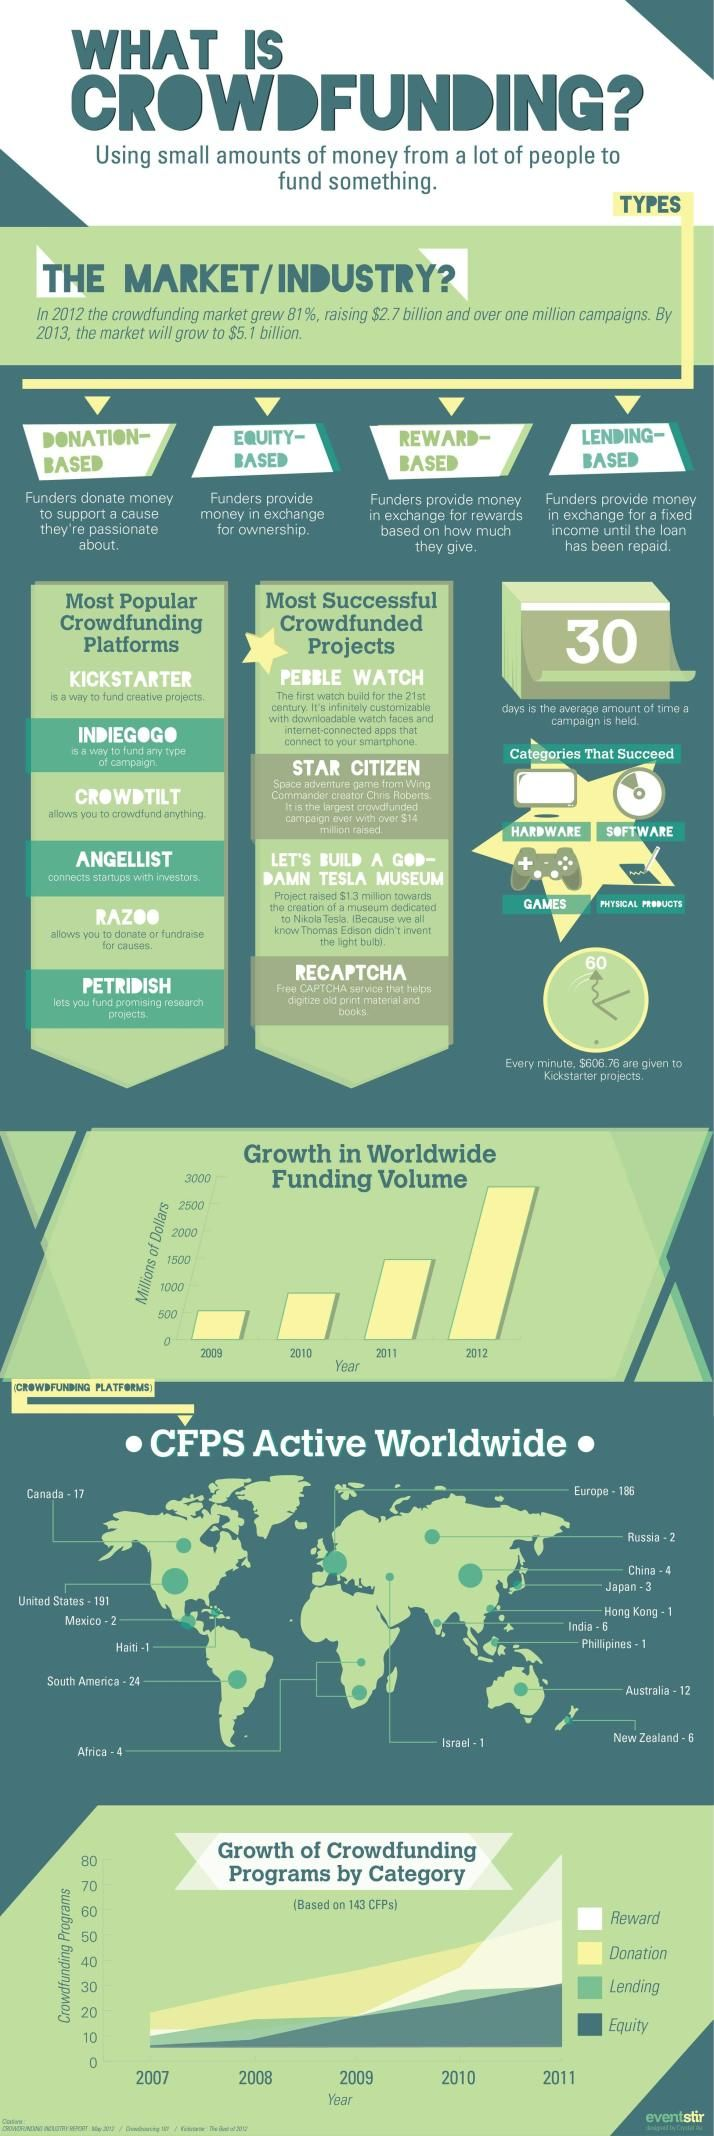 What is Crowdfunding #infografia #infographic #entrepreneurship